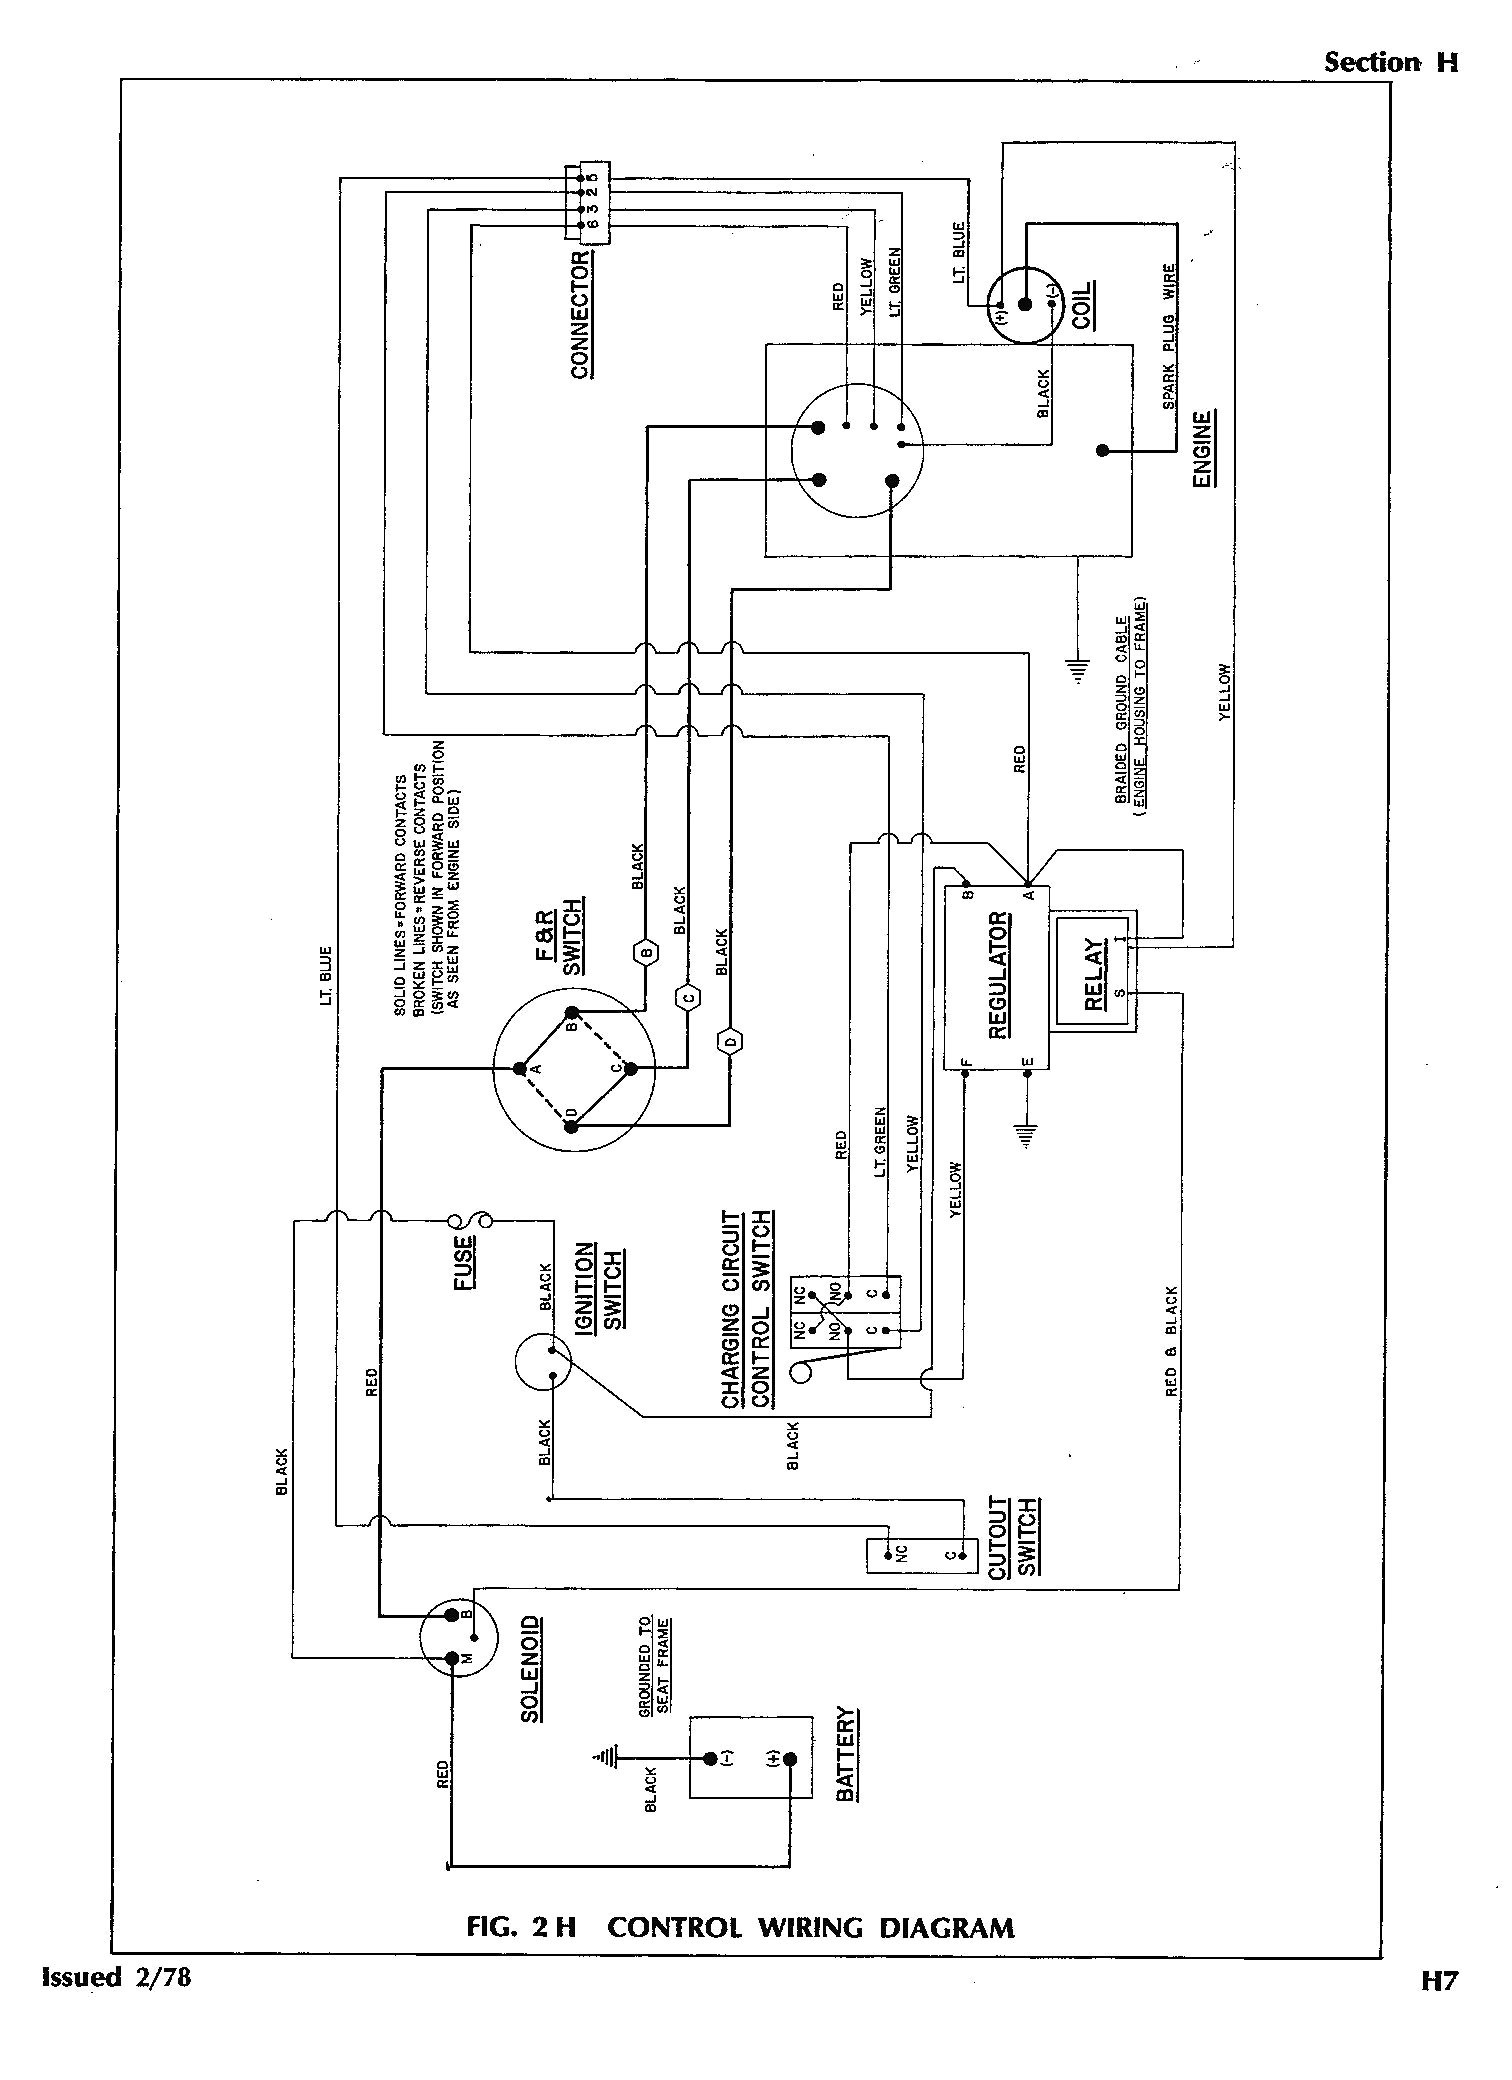 1988 Ezgo Gas Wiring Diagram - Worksheet And Wiring Diagram • - Ez Go Electric Golf Cart Wiring Diagram